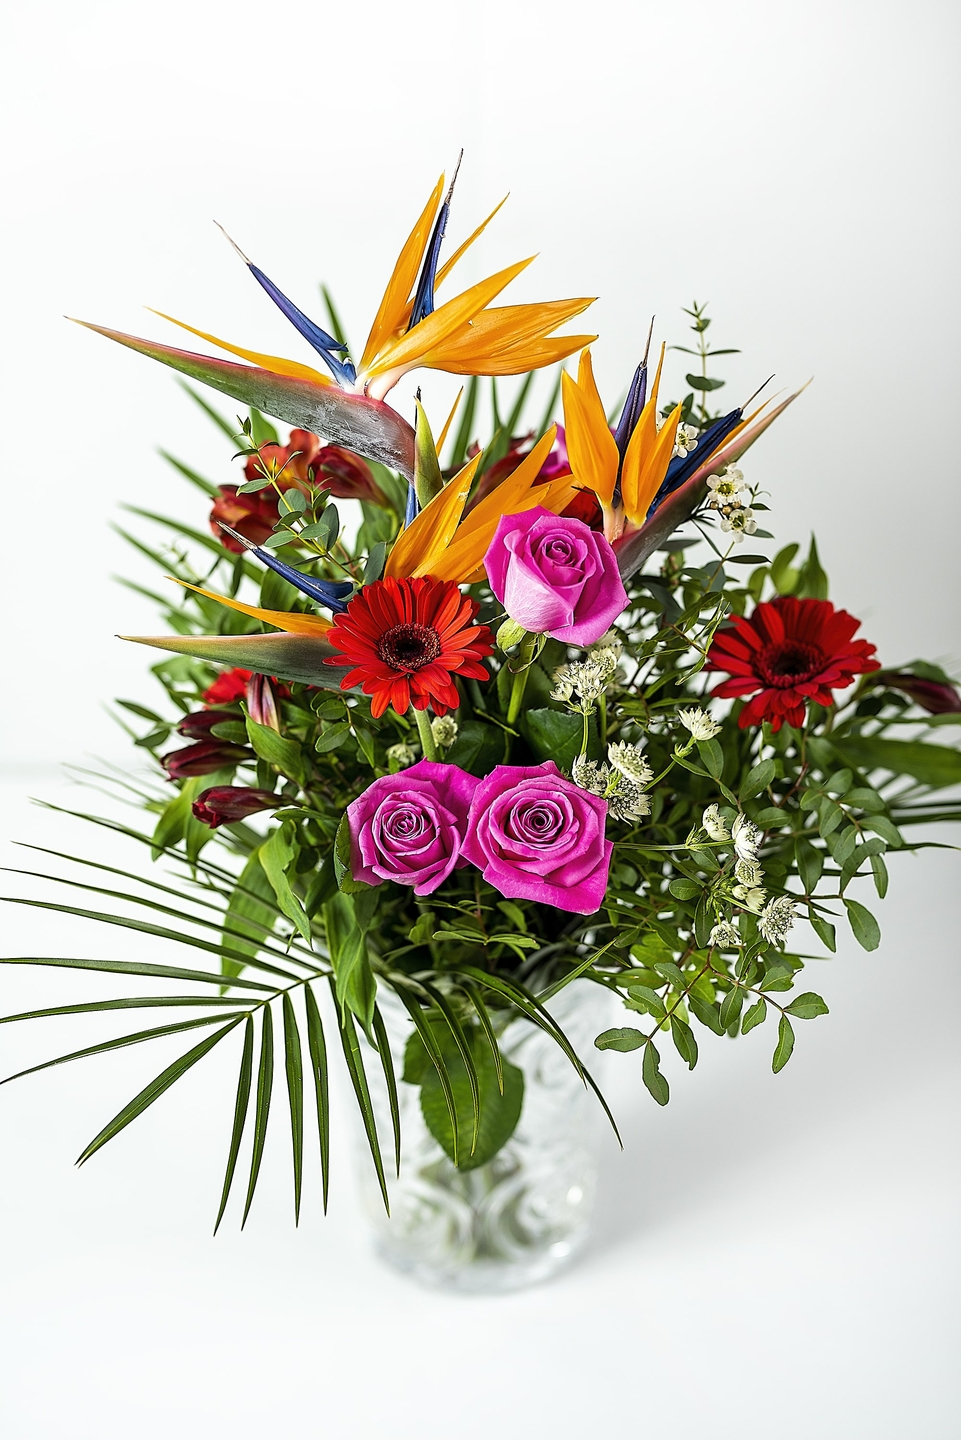 Provide Flower Services in the UK (@flowersservices) Cover Image